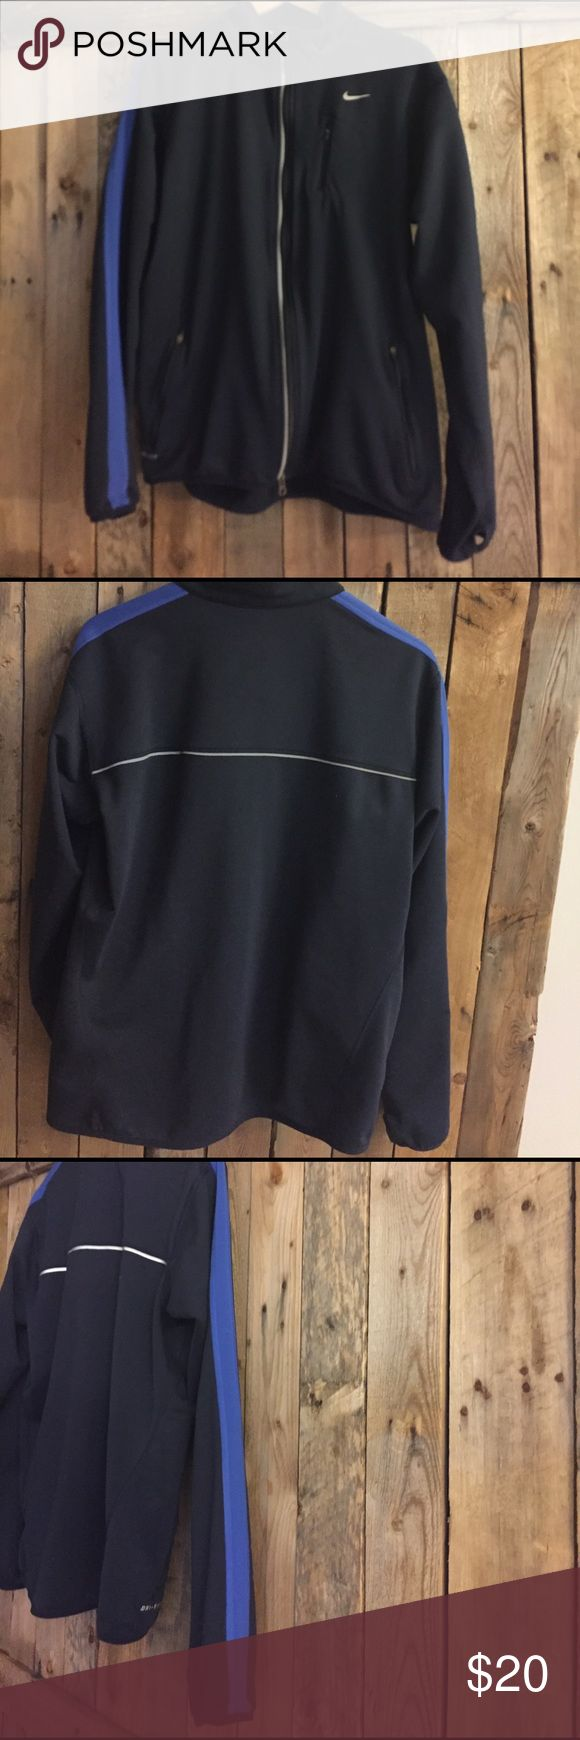 Men's Nike running jacket Men's Nike dri-fit running jacket. Like new. Thumb holes in sleeve. True to size Nike Jackets & Coats Lightweight & Shirt Jackets